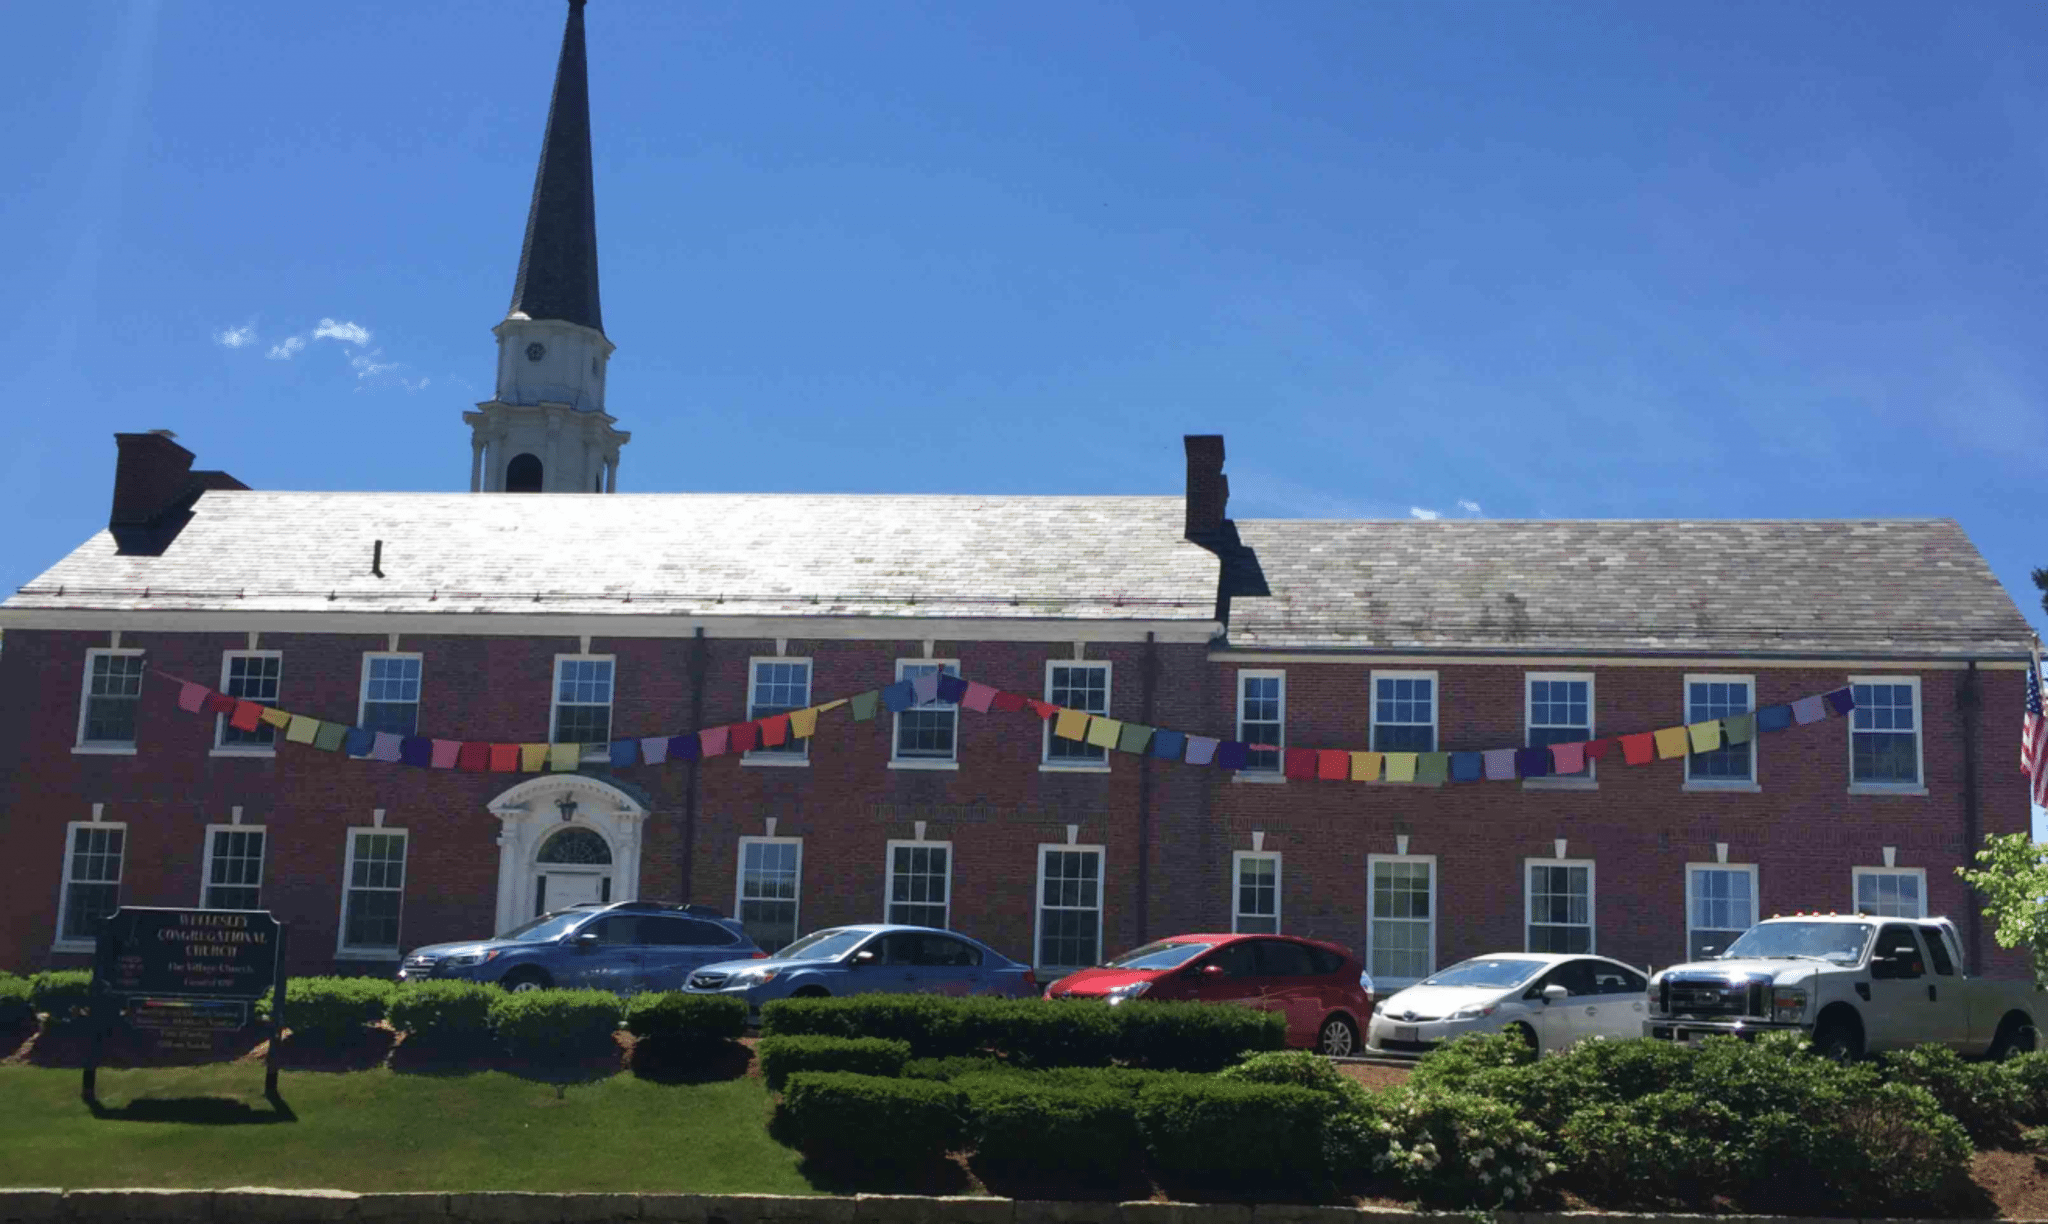 Prayer flags across the facade of the Central St. side of Wellesley Village Church. Photo credit: Village Church